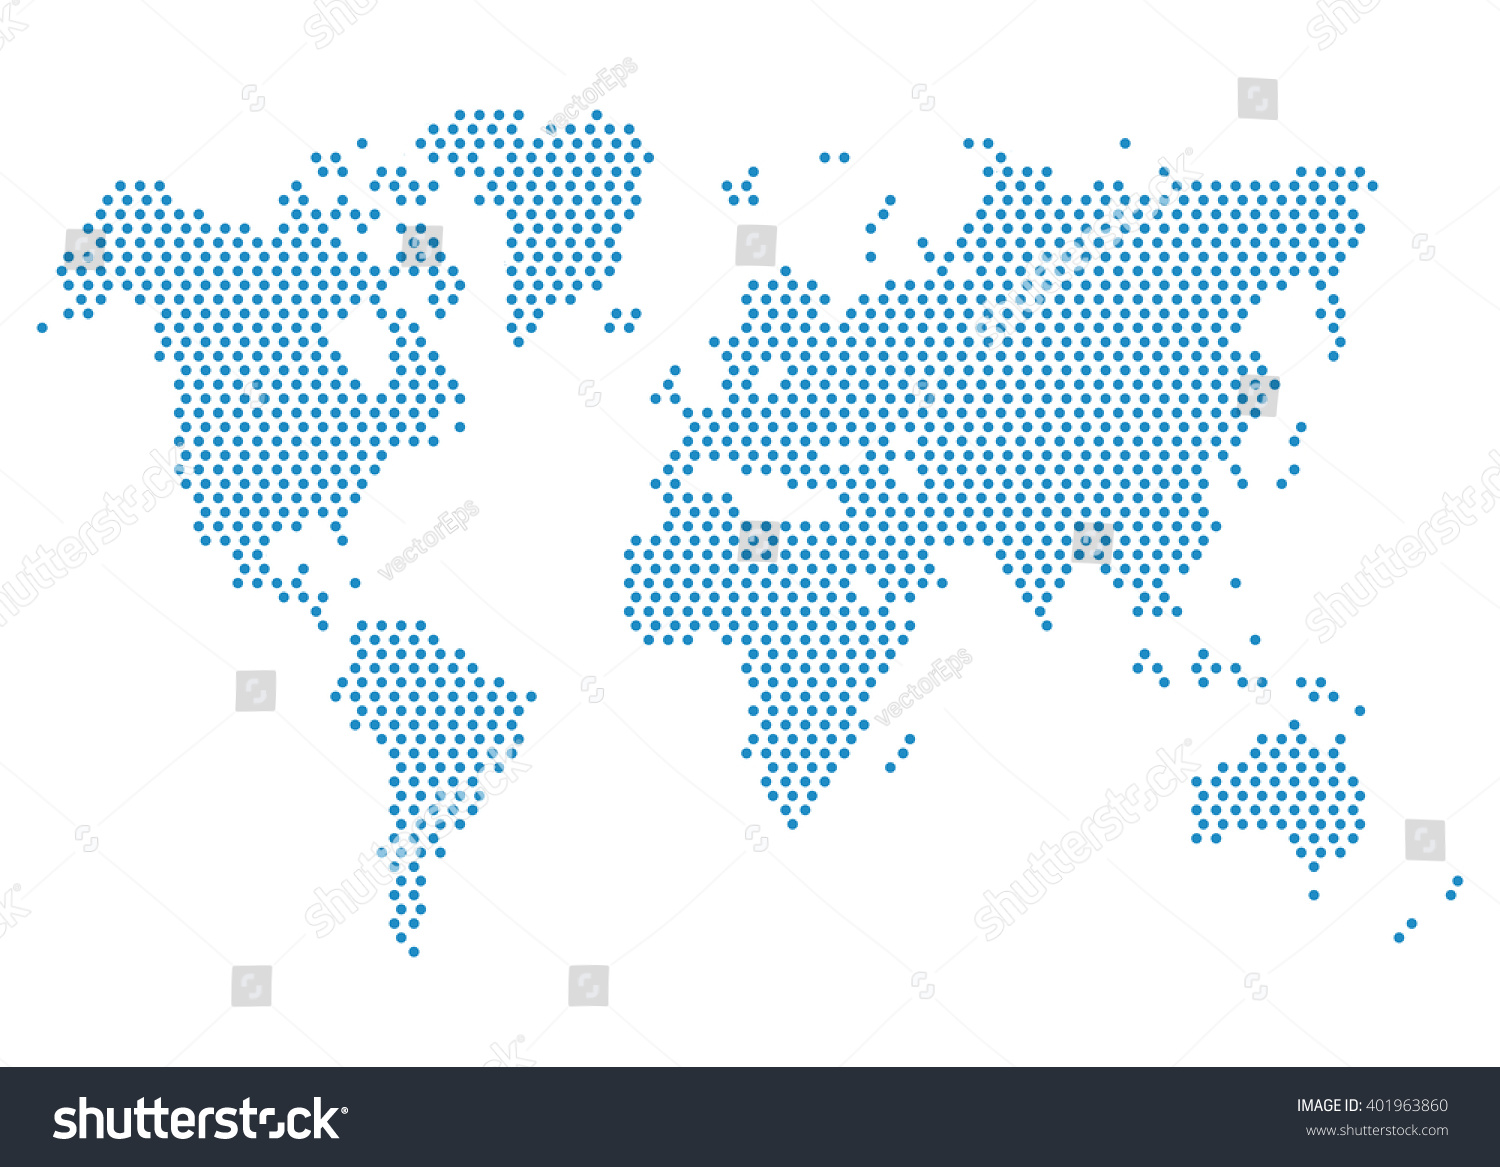 Dotted World Map. Template With Blue Points Isolated On ...